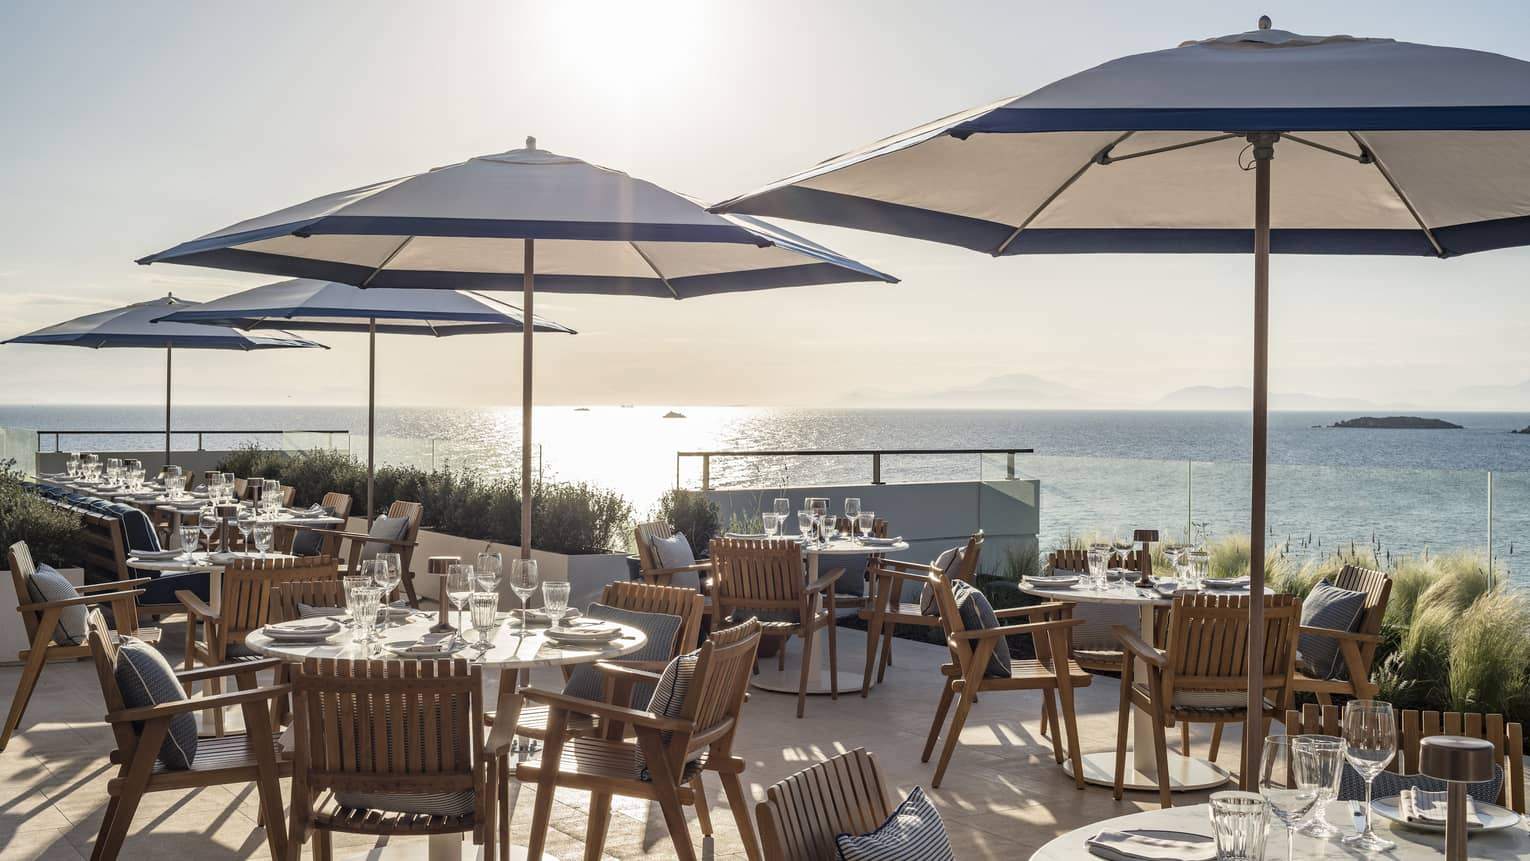 Sunny outdoor restaurant in Greece, blue umbrellas at wooden tables, overlooking the sea